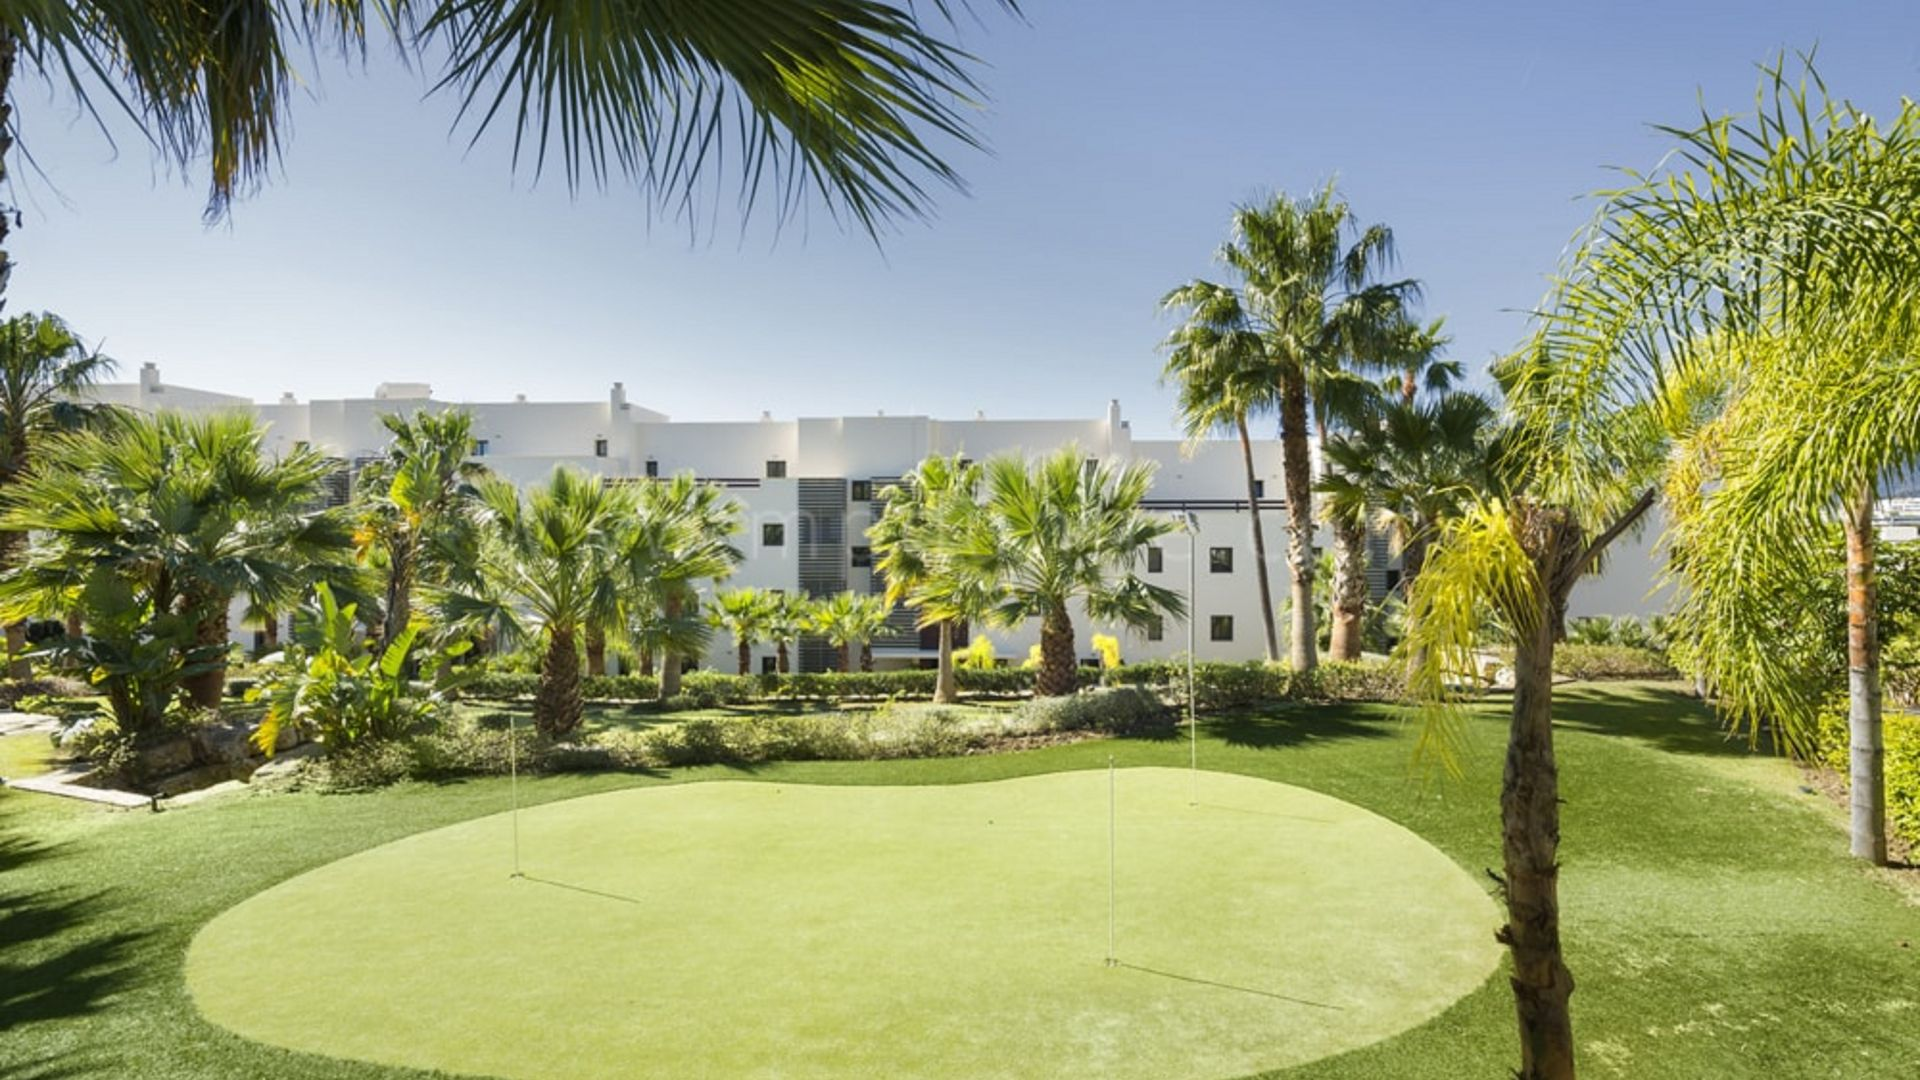 Objektentwicklung in Los Flamingos Golf, Benahavis